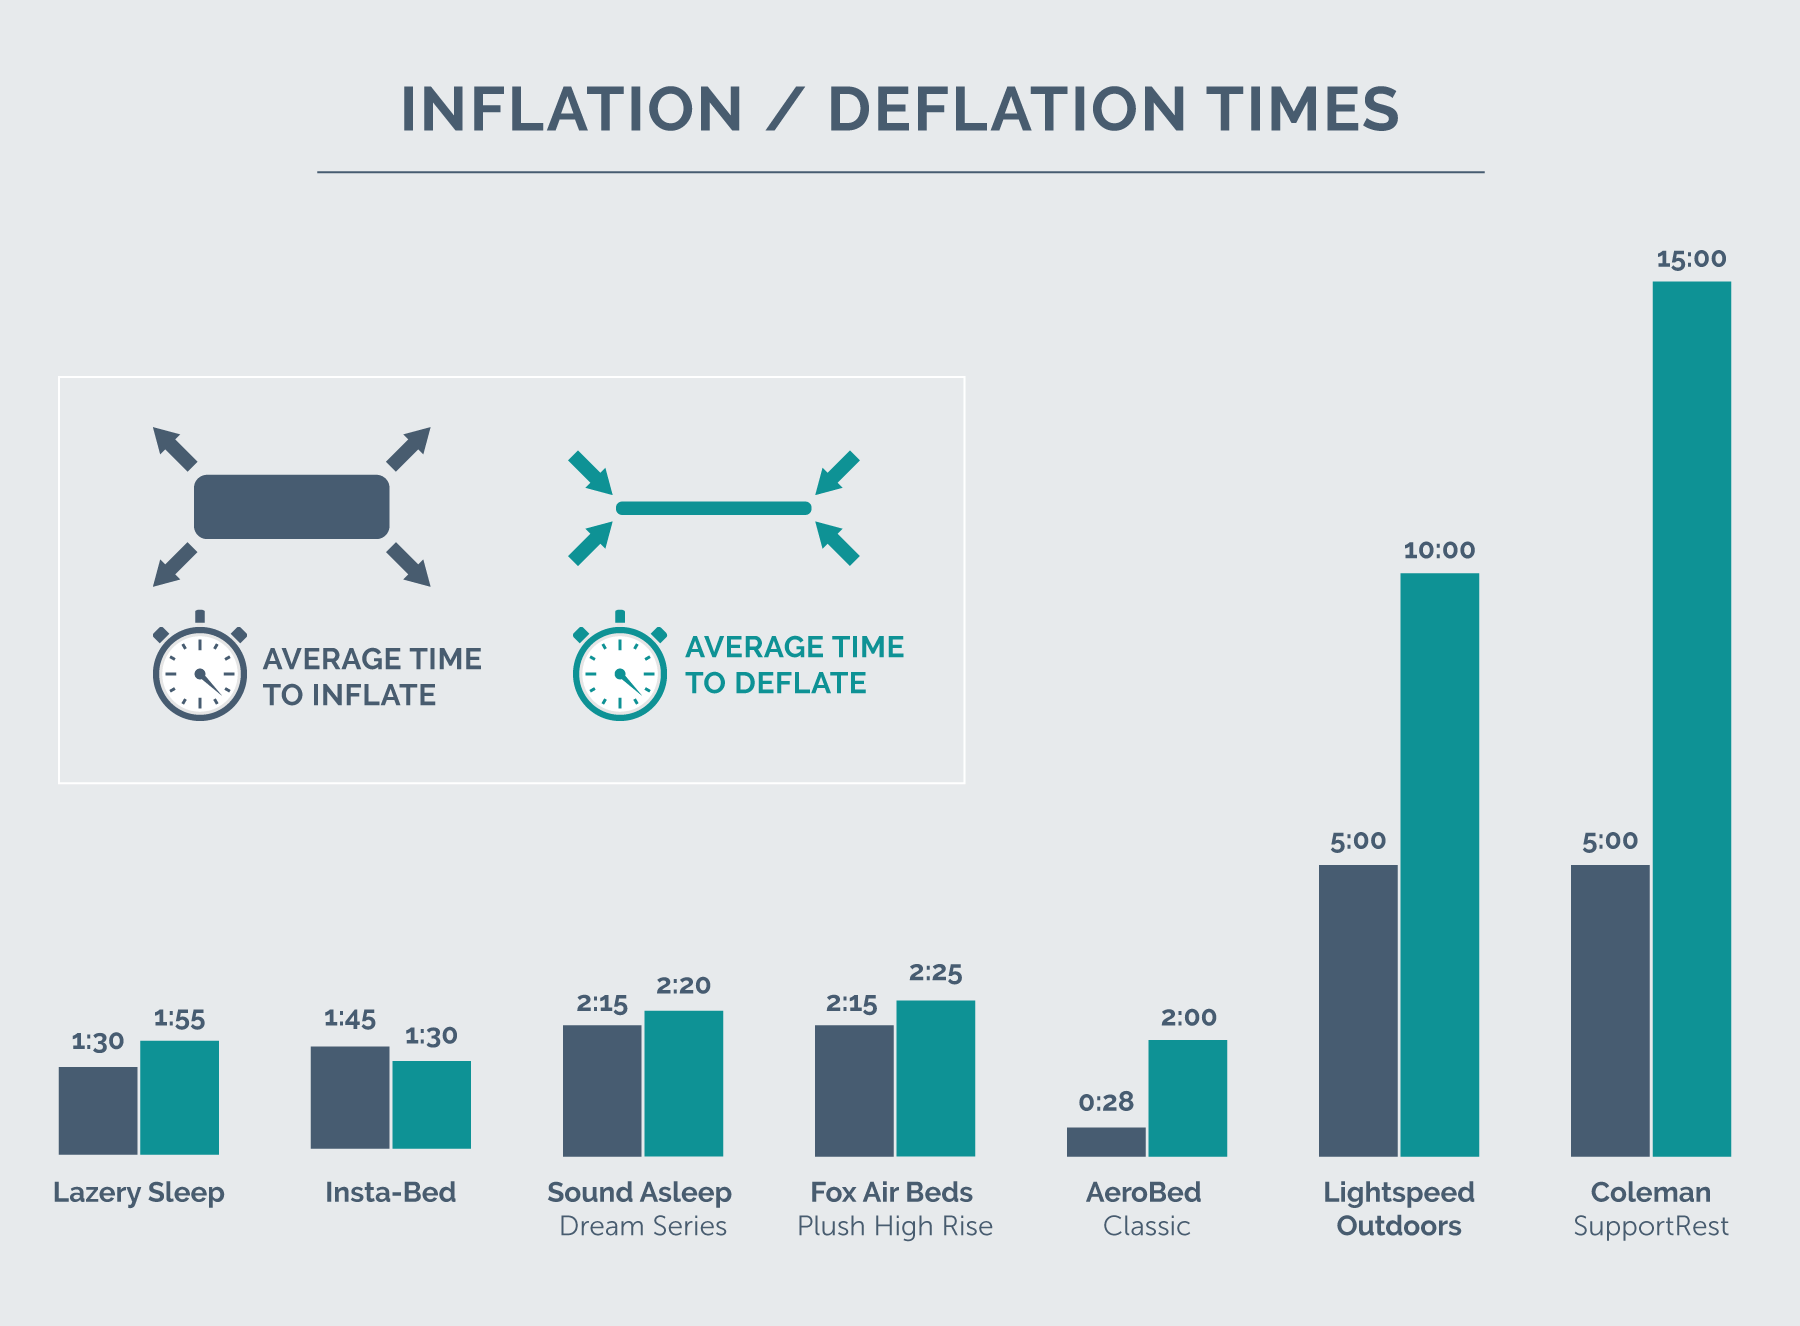 Rollrasen Aus Holland What Is Inflation And Deflation Inflation Is Not Always